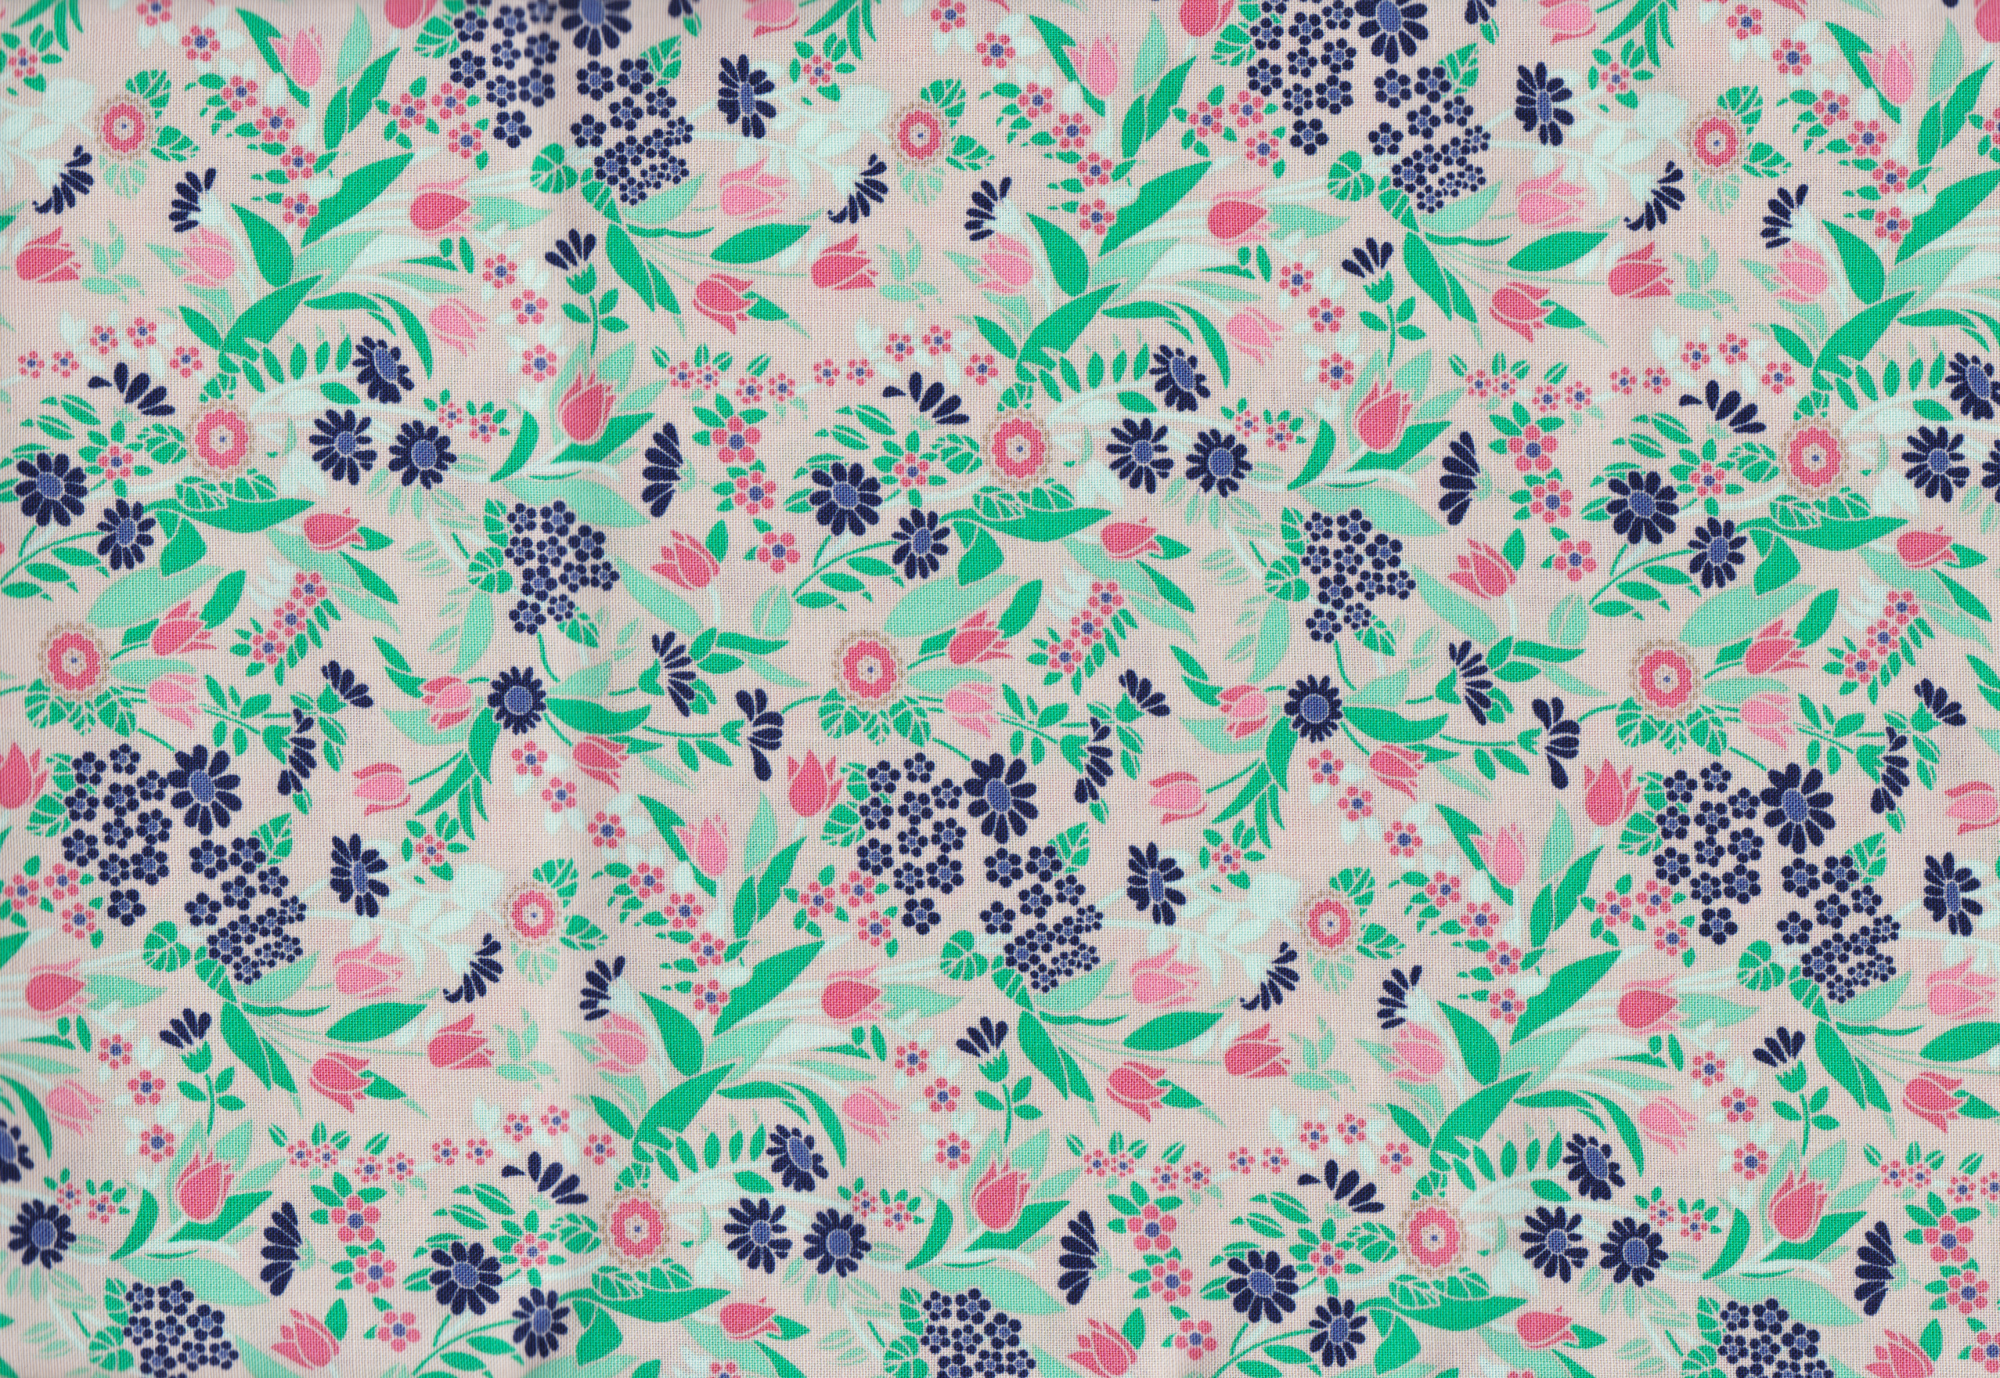 PROMO* Boundless Pre Cuts - 80825 Small Floral